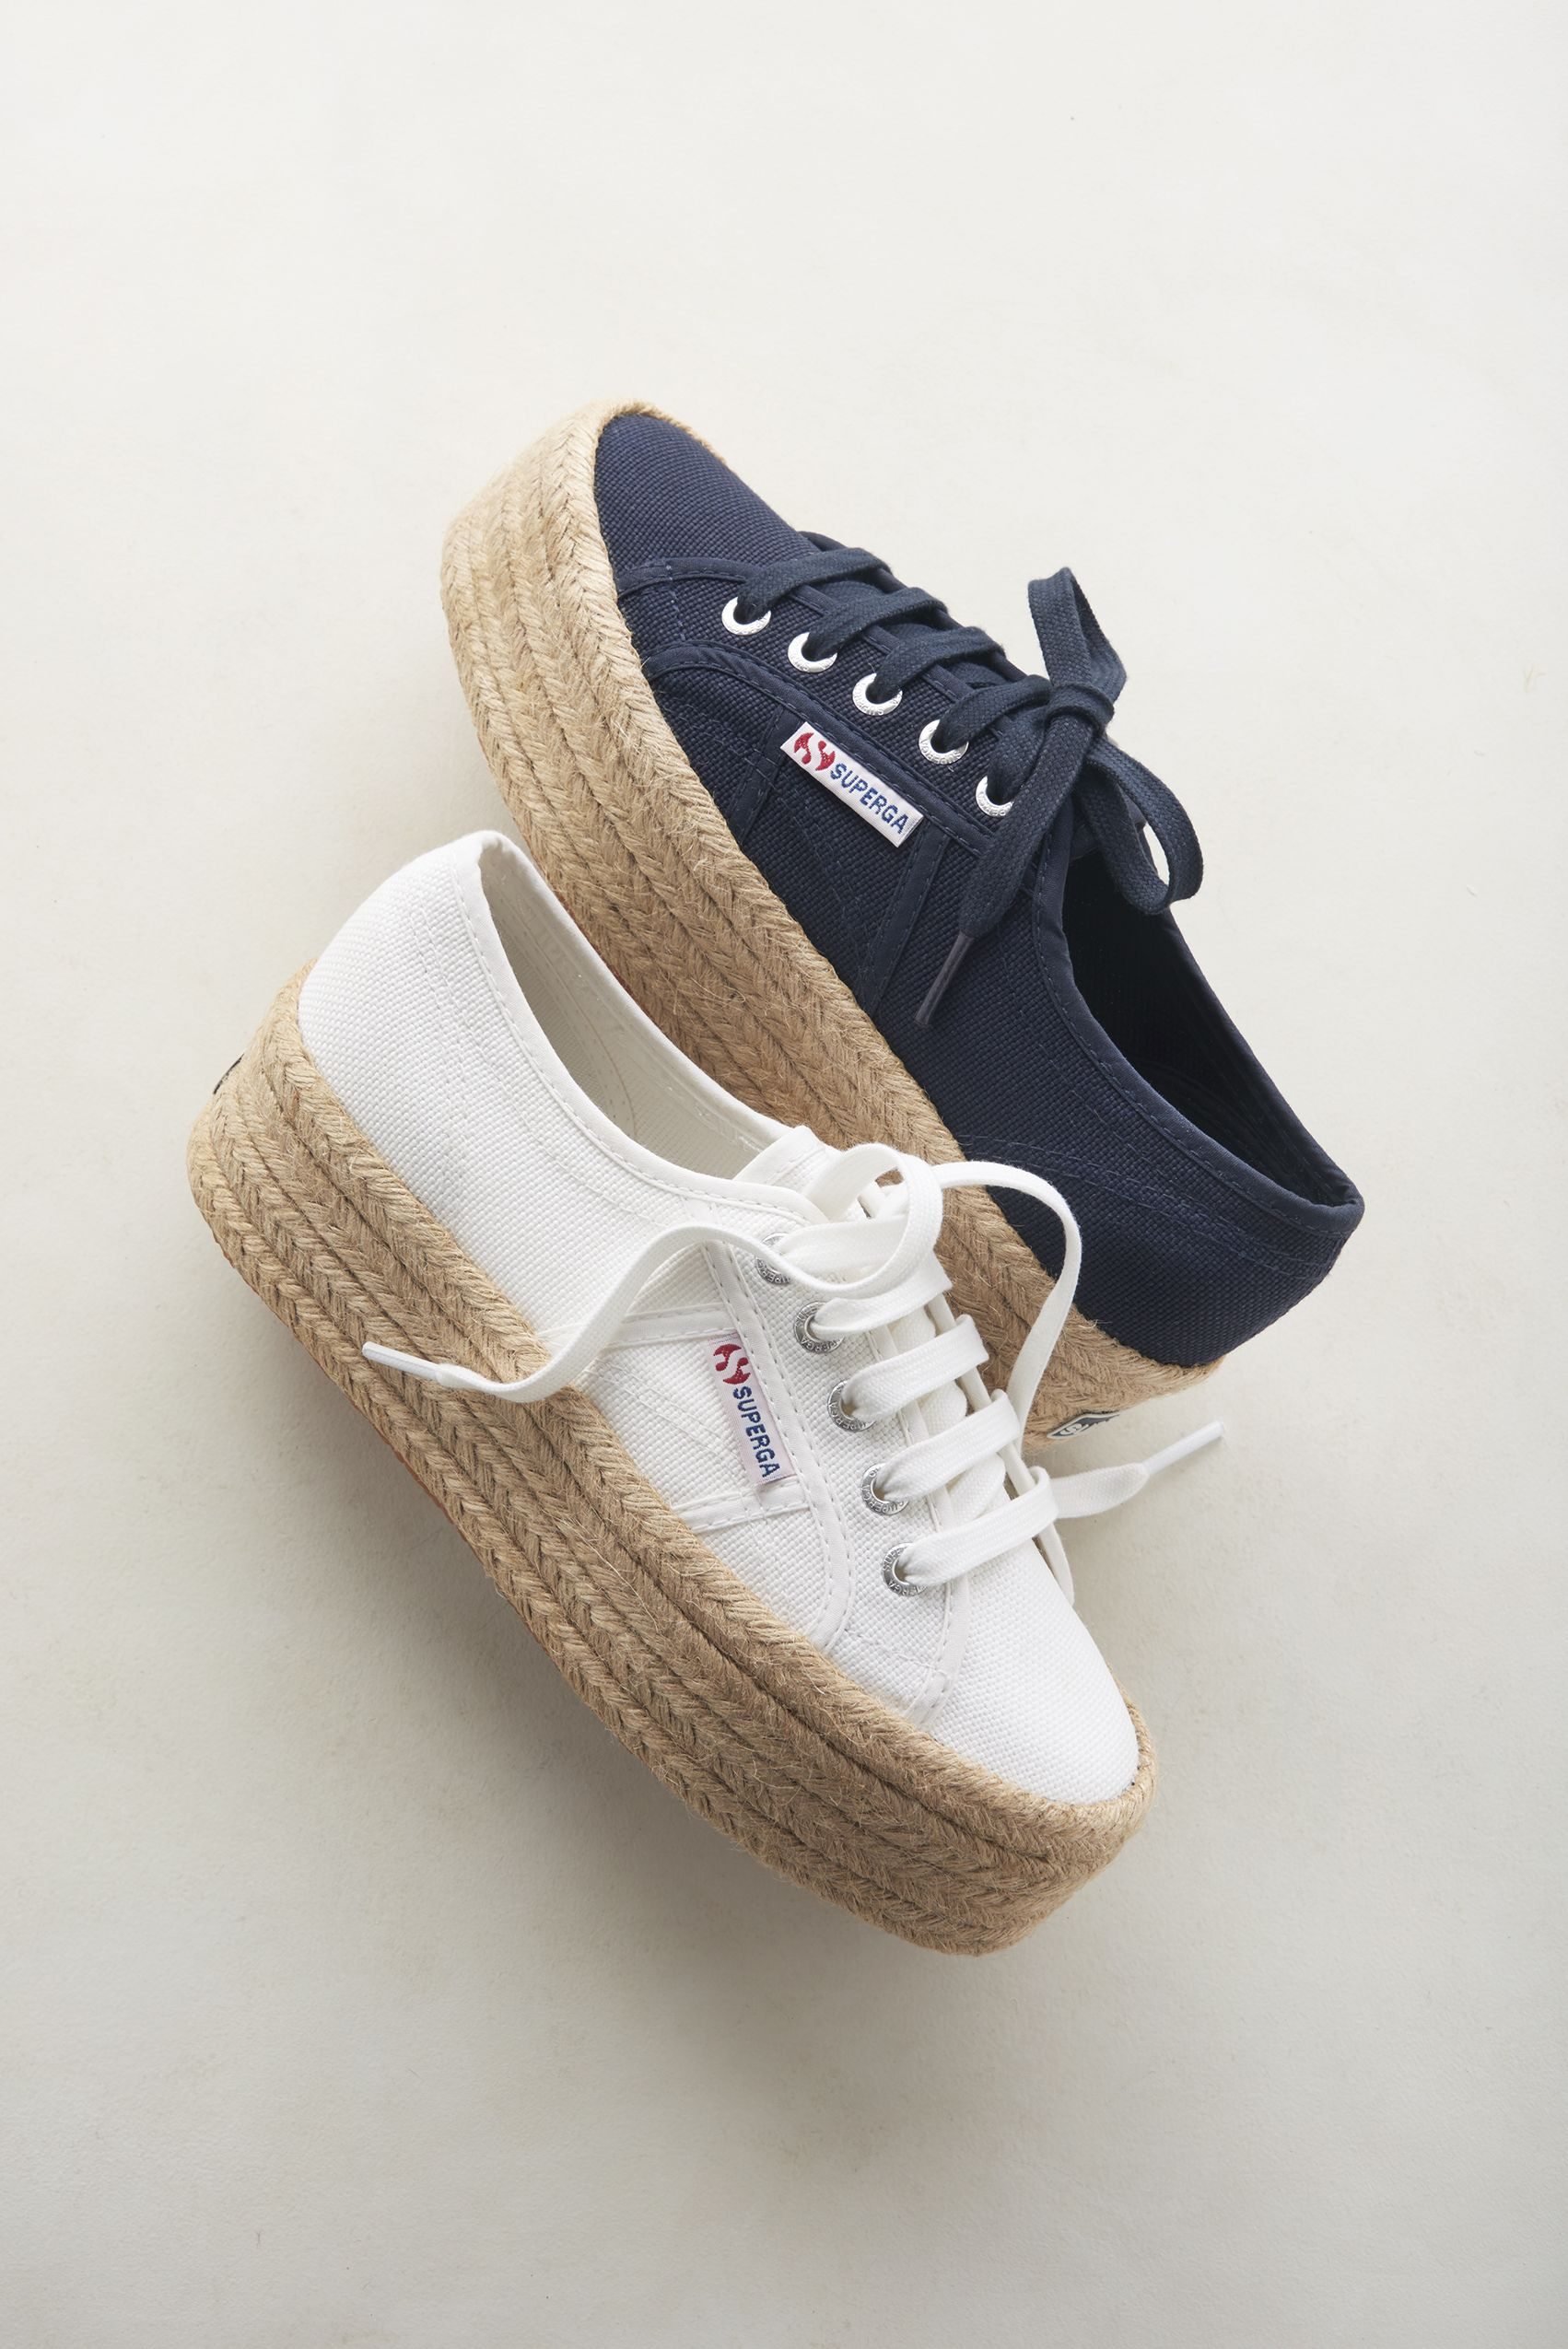 3c6d463c8c57 Superga raffia-wrapped platform sneaker (in white and navy).